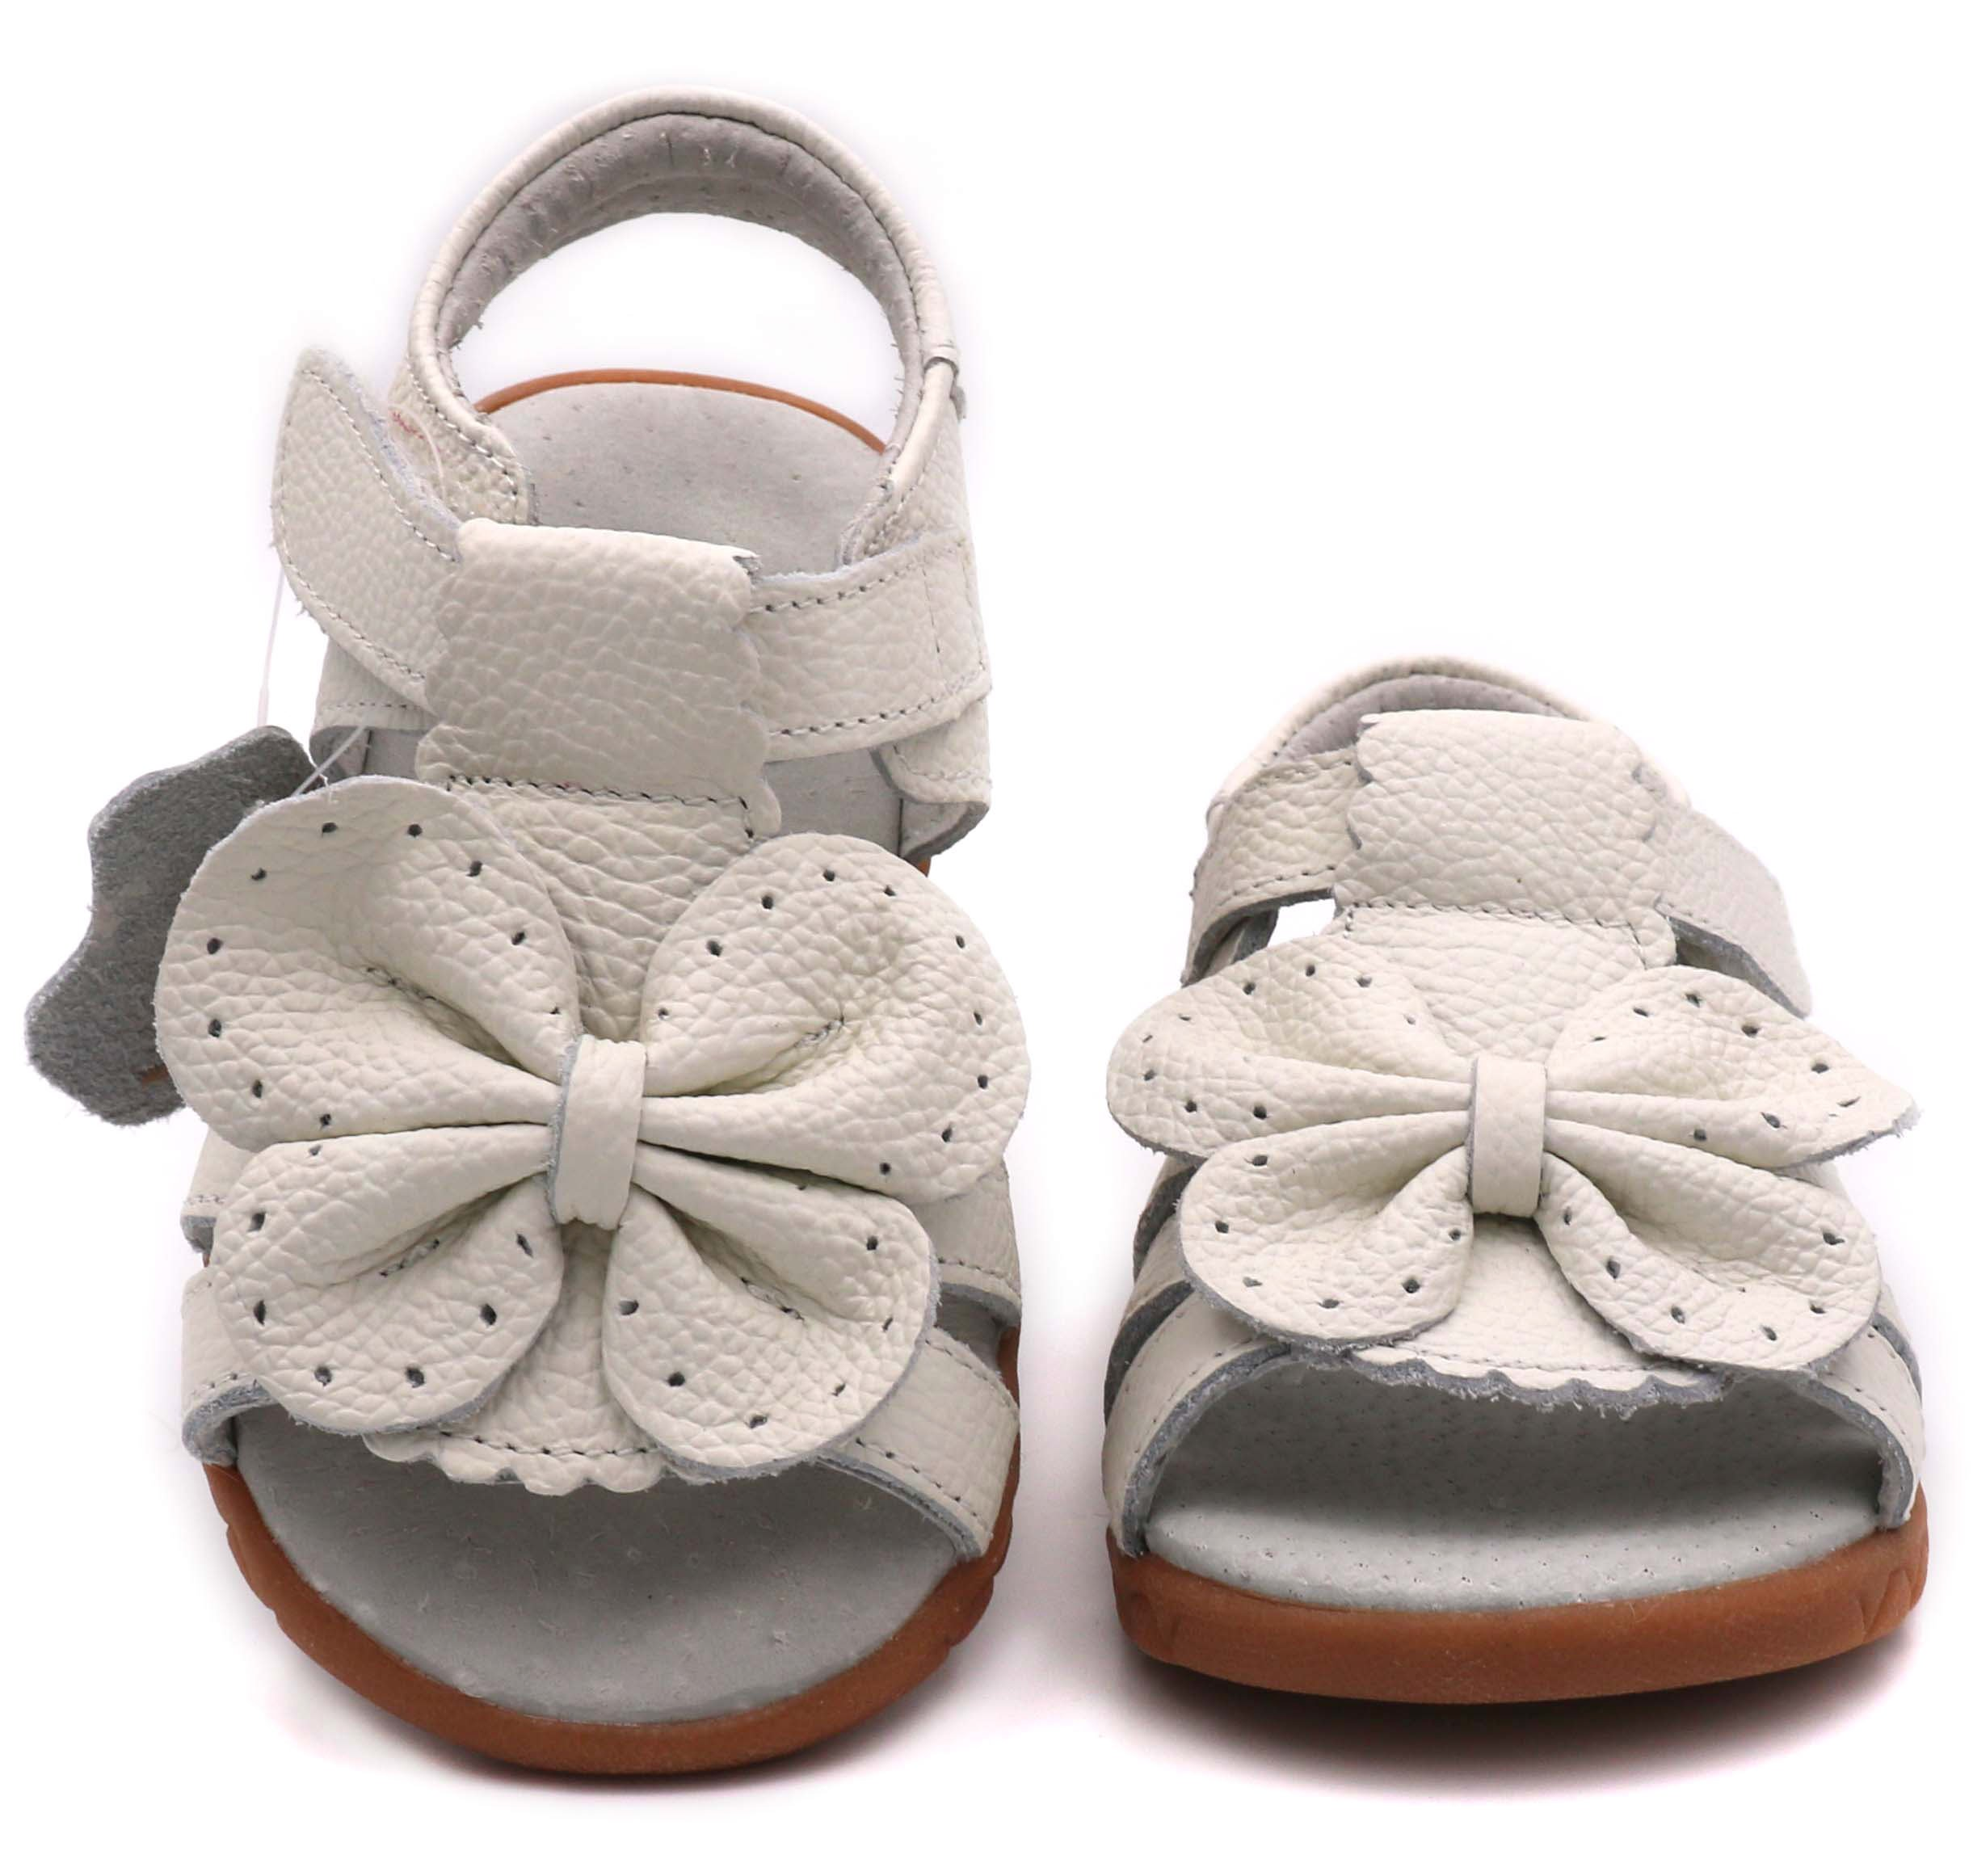 LONSOEN Girl's Butterfly Soft Leather Sandals Casual Outdoor Summer Shoes(Toddler/Little Kid),White Butterfly,KSD007 CN31